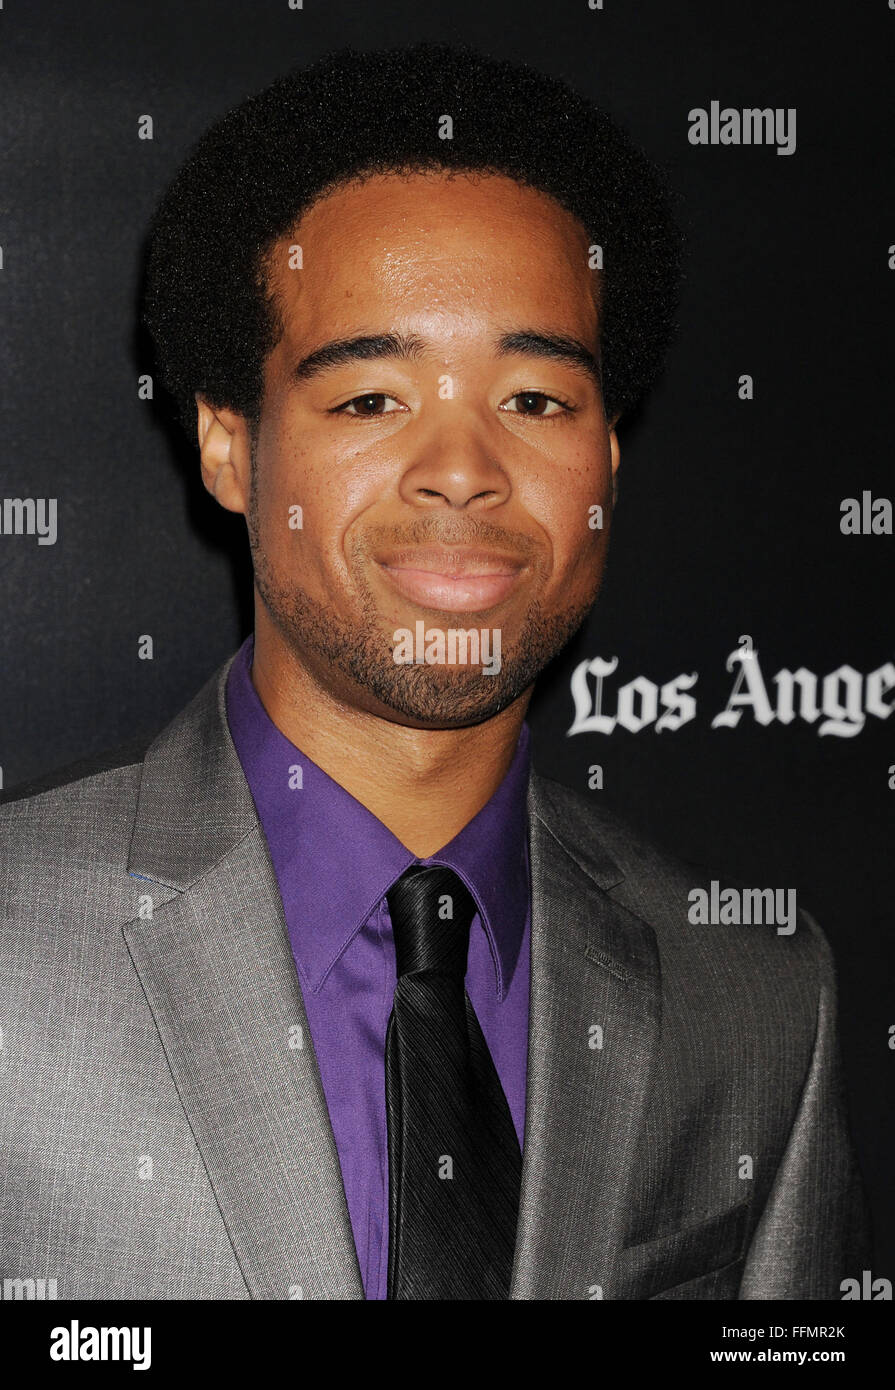 Actor Tory Thompson attends 'The Final Girls' screening during the 2015 Los Angeles Film Festival at Regal - Stock Image